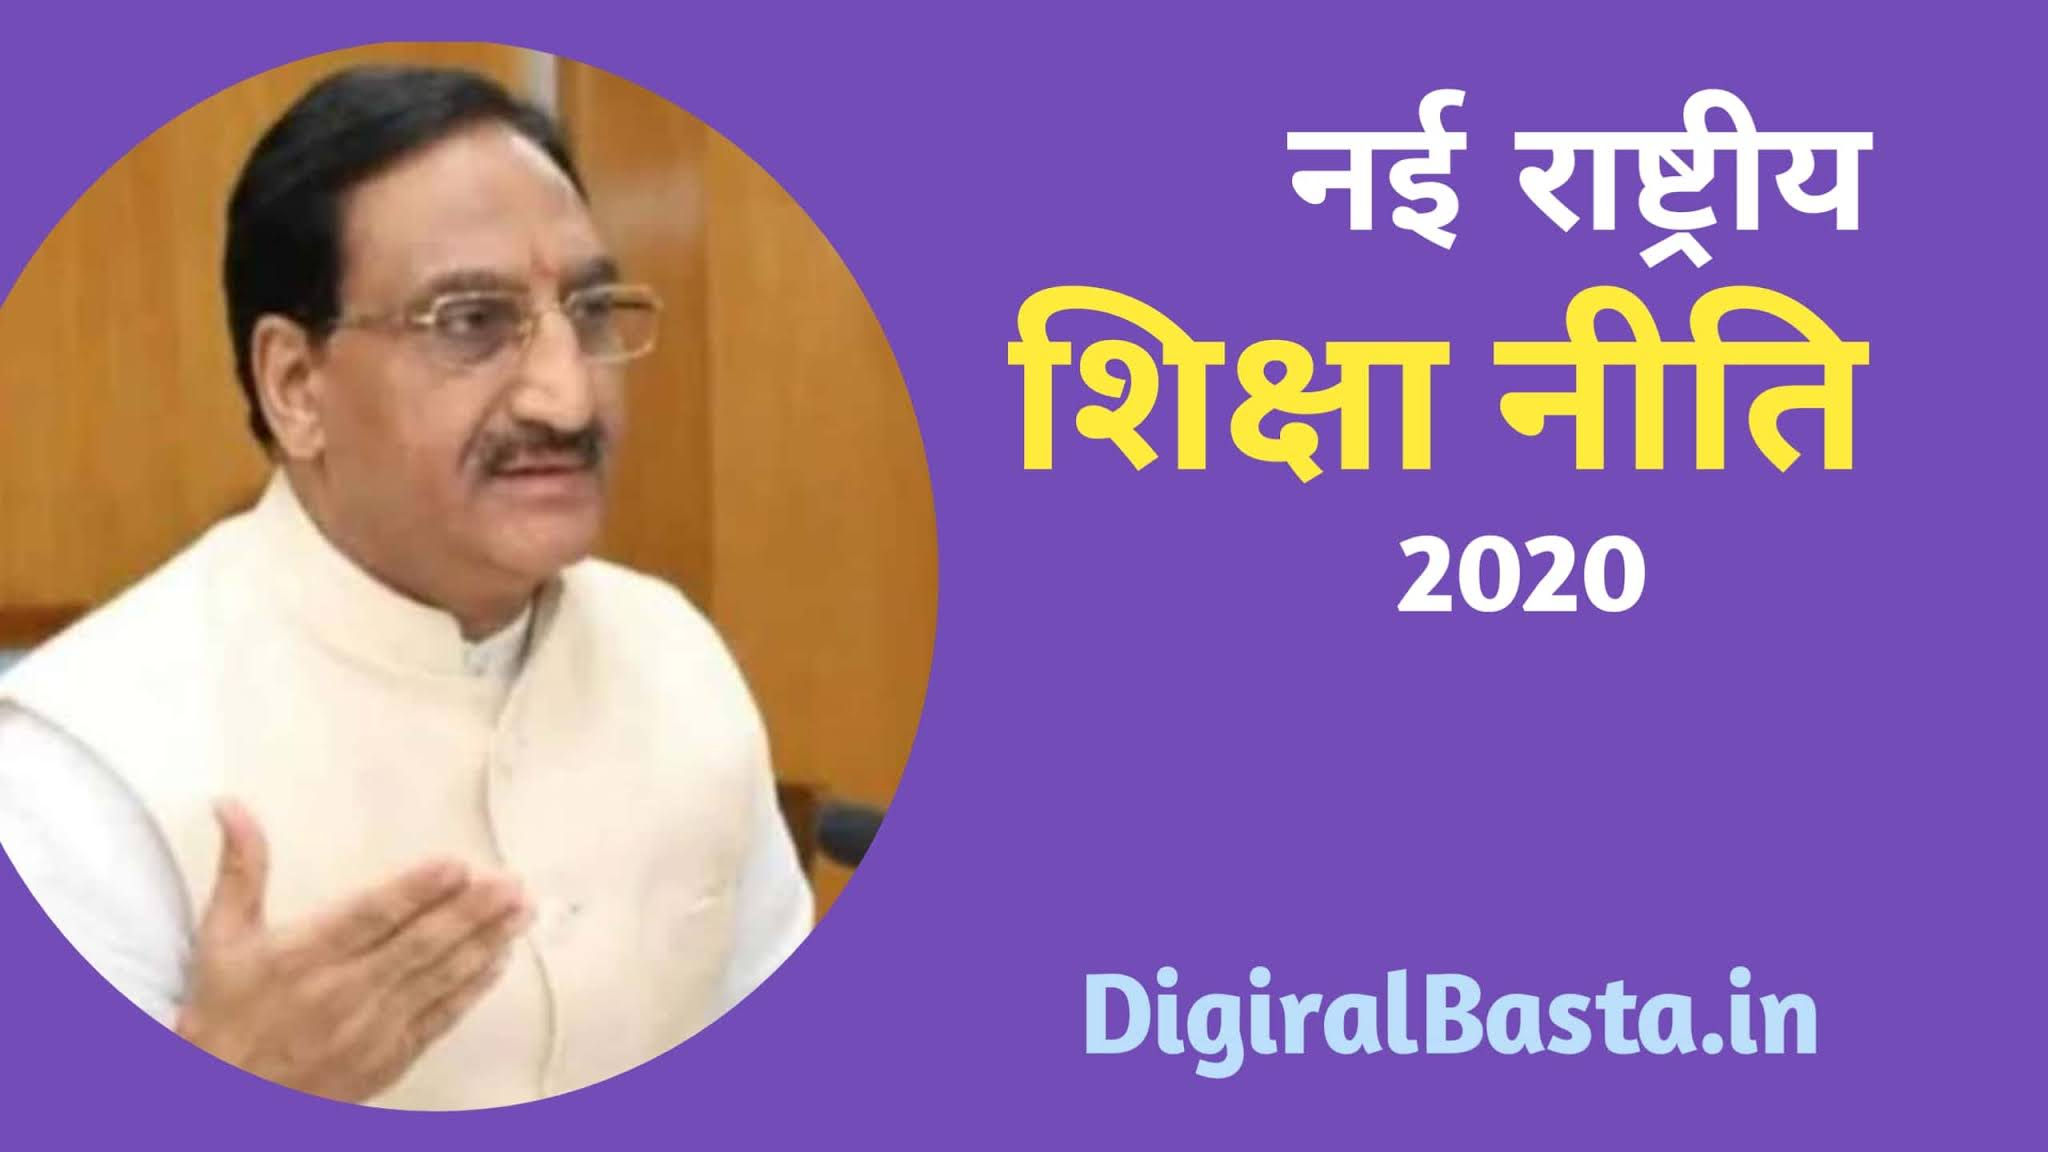 National education policy 2020 In Hindi | राष्ट्रीय शिक्षा नीति 2020